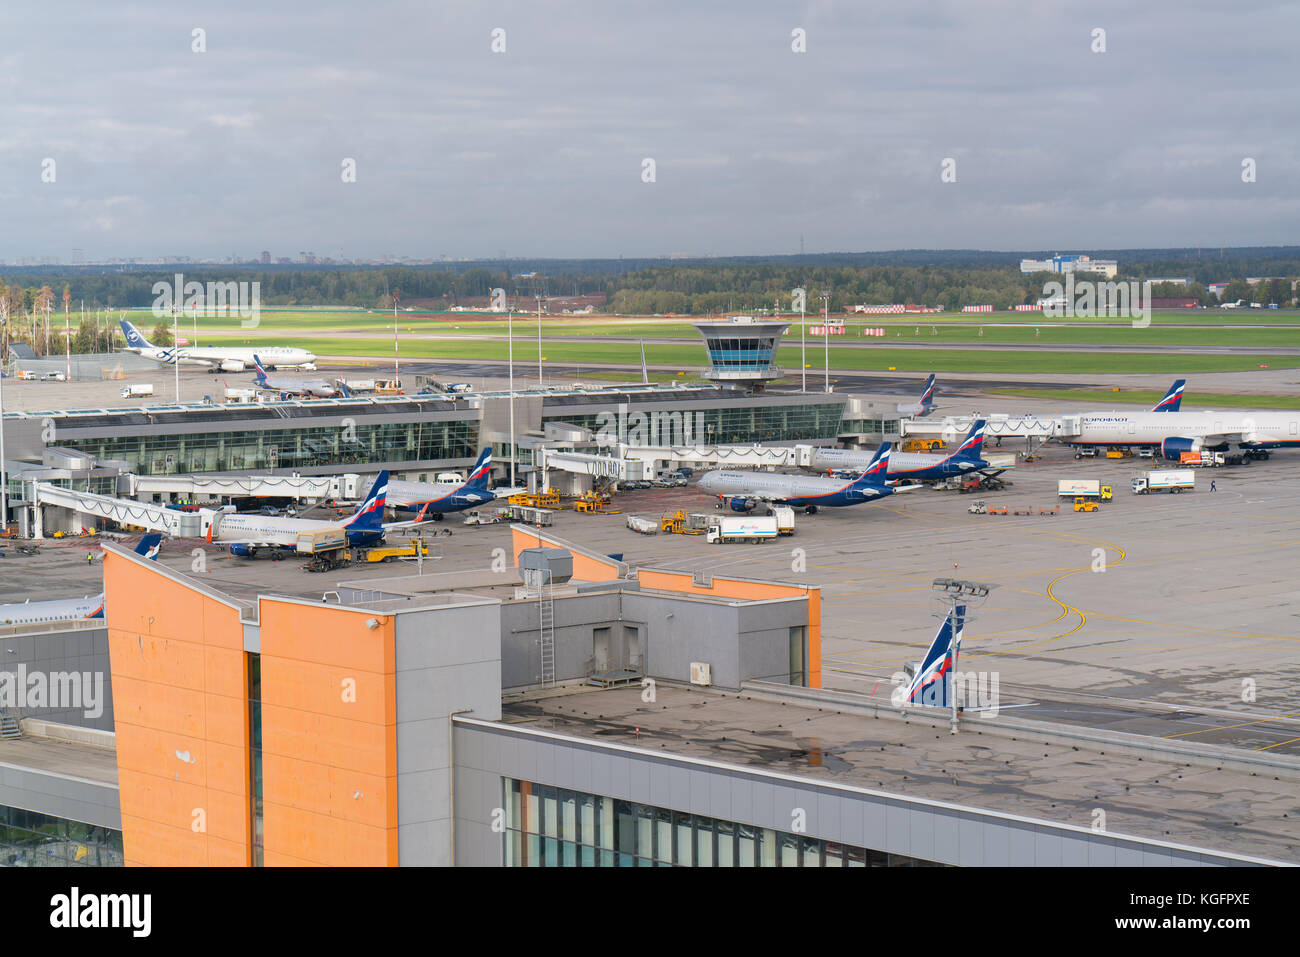 Moscow, Sheremetyevo airport, Russia - September 24, 2016: view of aircraft parking near terminals - Stock Image